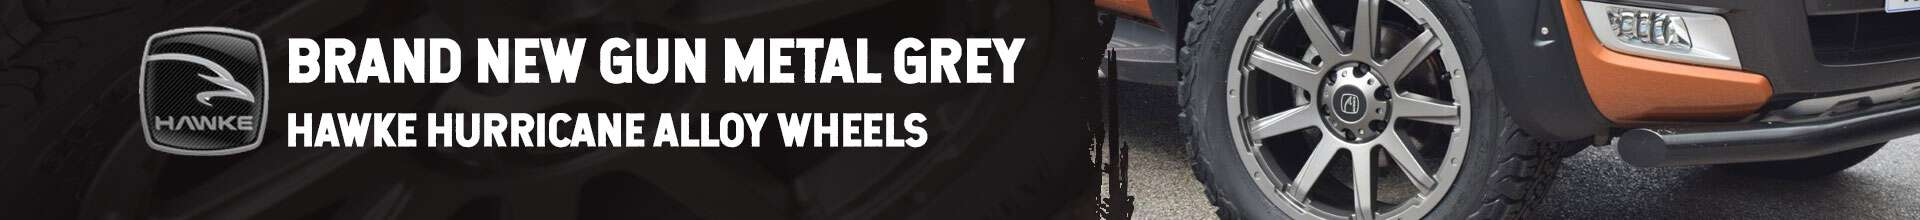 New Gun Metal Grey Alloy Wheels